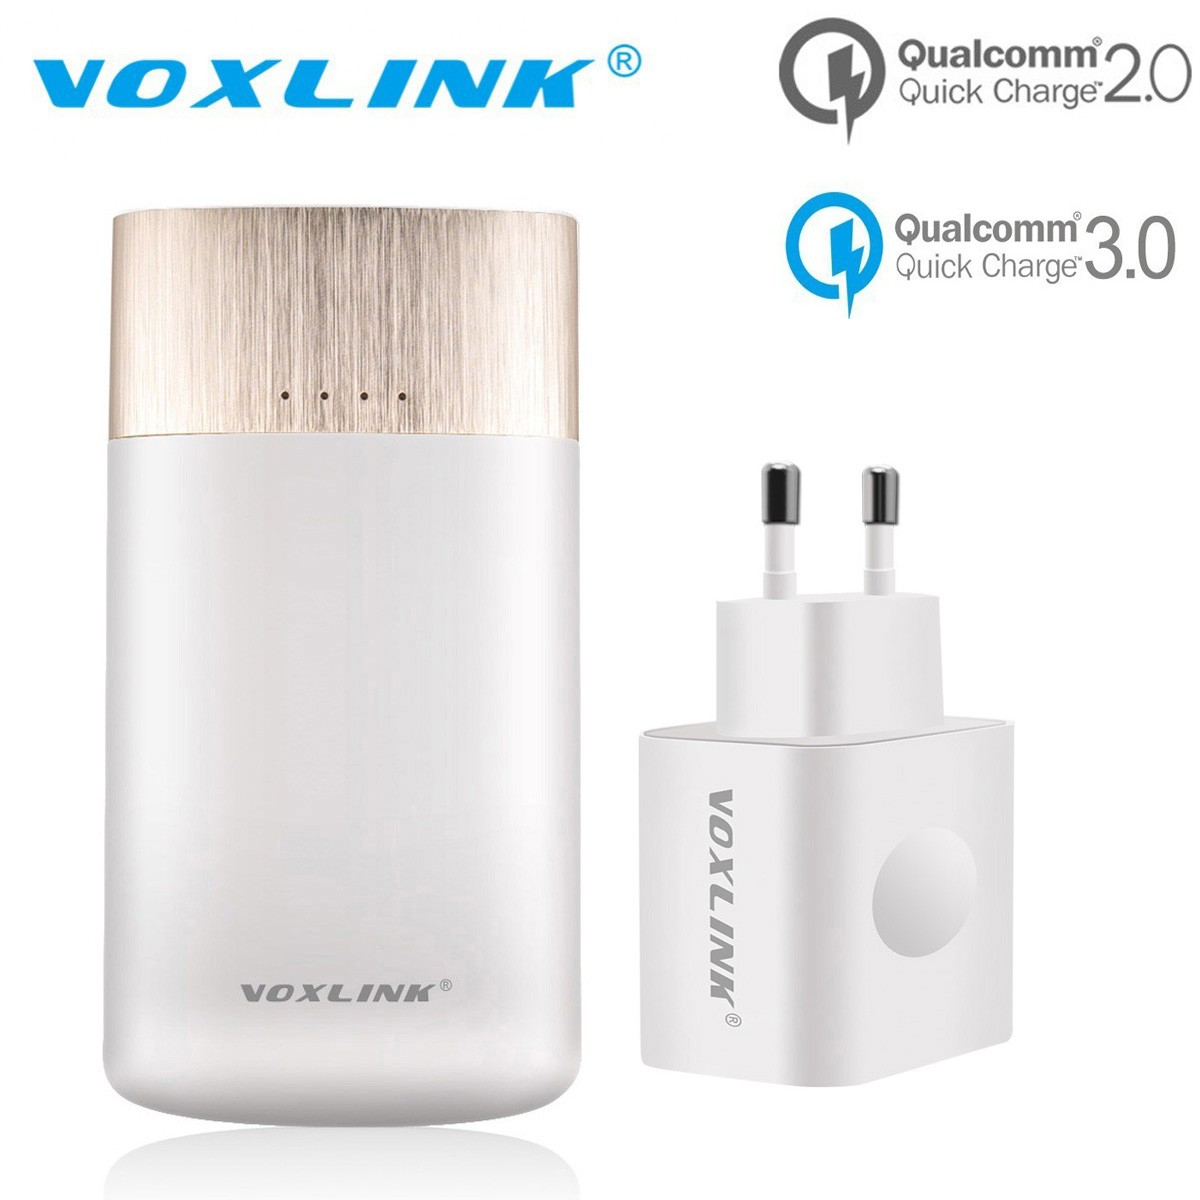 VOXLINK Original 2 in 1 Qualcomm Quick Charge 2.0 Dual Smart USB 9000mAh Power Bank + Qualcomm Quick 3.0 Charger EU/US Plug